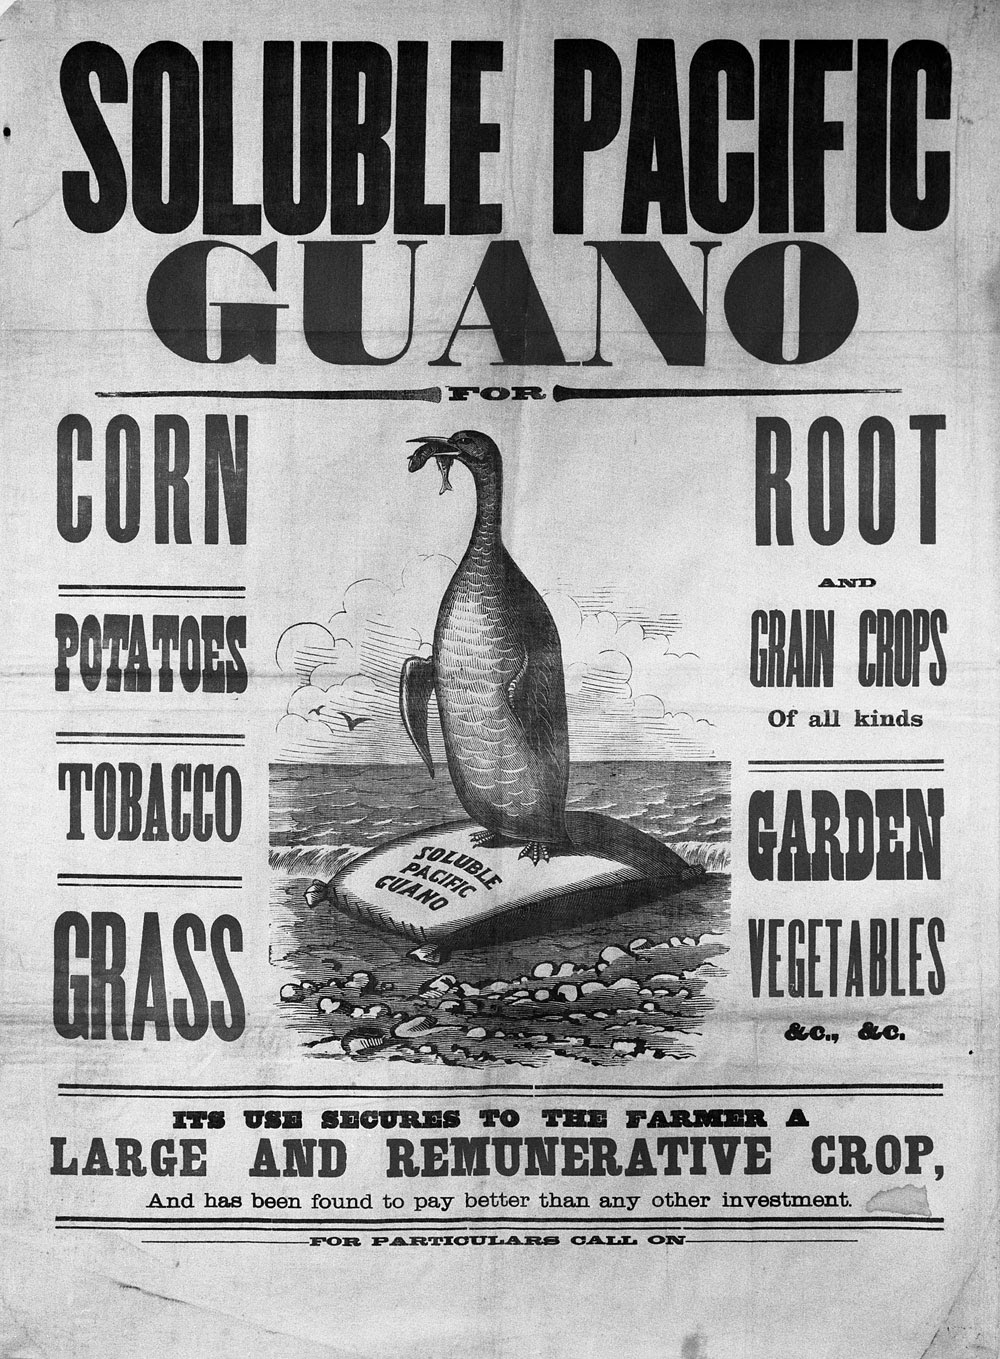 Soluble Pacific Guano, 1857-83. Courtesy of Mystic Seaport, Mystic, Conn., #1994.5.